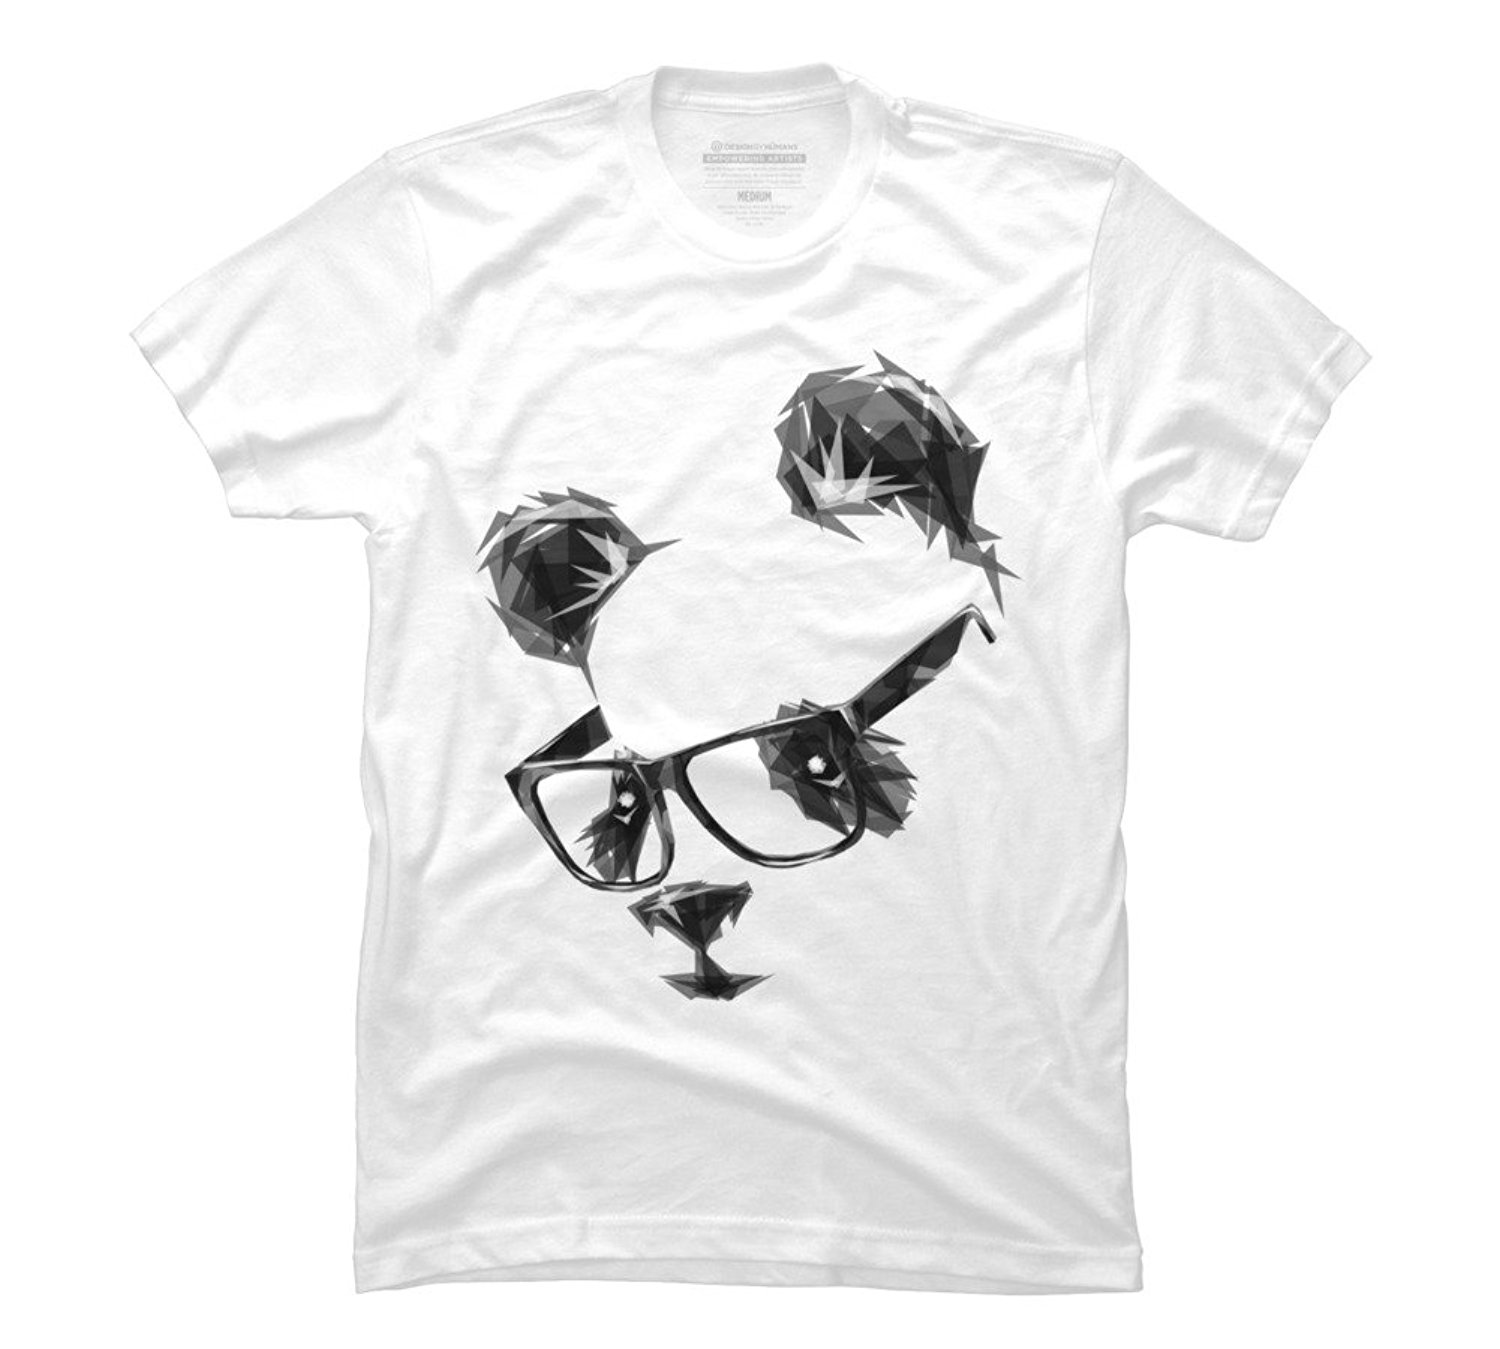 Cool Panda Men's Graphic T Shirt - Design By Humans 100% Cotton T-Shirts Brand Clothing Tops Tees Customize Plus Size